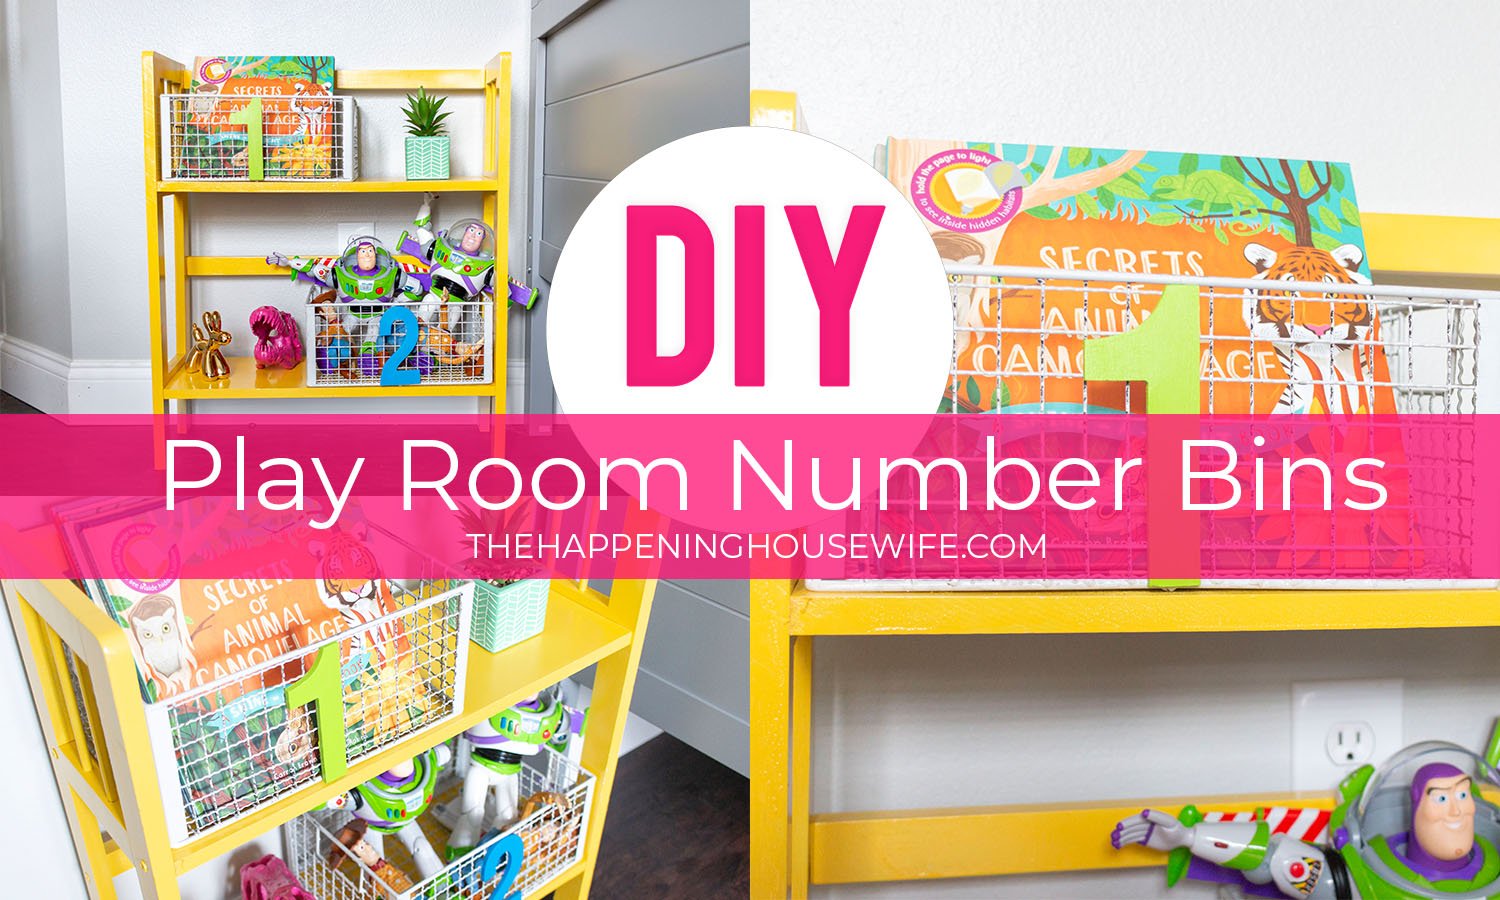 DIY PLAYROOM NUMBER BINS Playroom decor kids decor home decor diy easy home decor kids toy storage